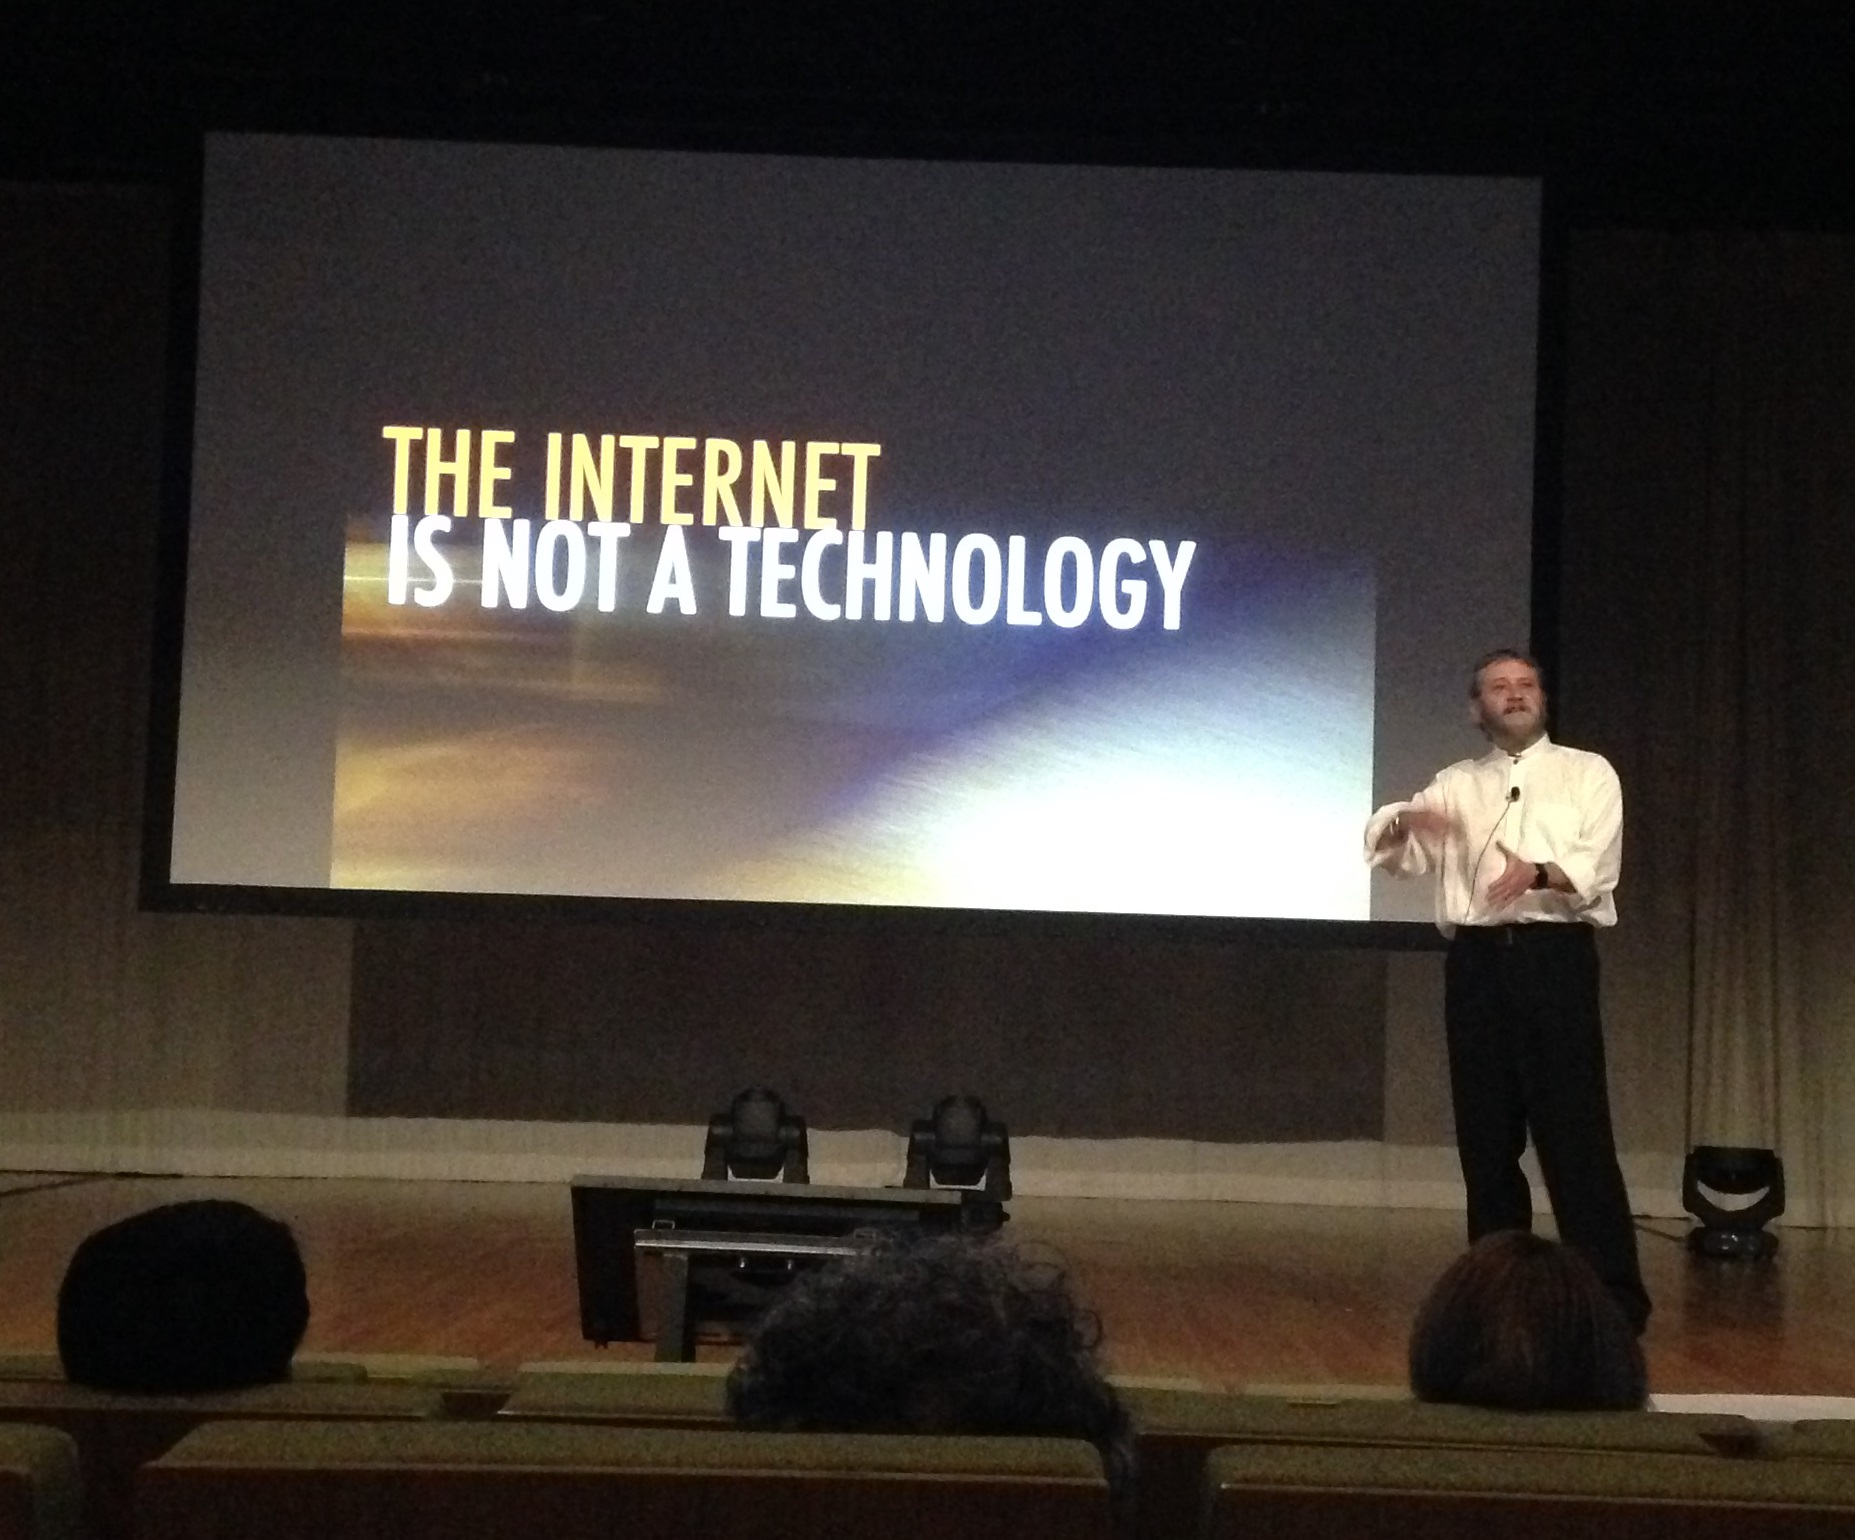 Keynote speaker Alexander Manu discusses leveraging technology into new behavior platforms at the 2015 IASDR Conference.